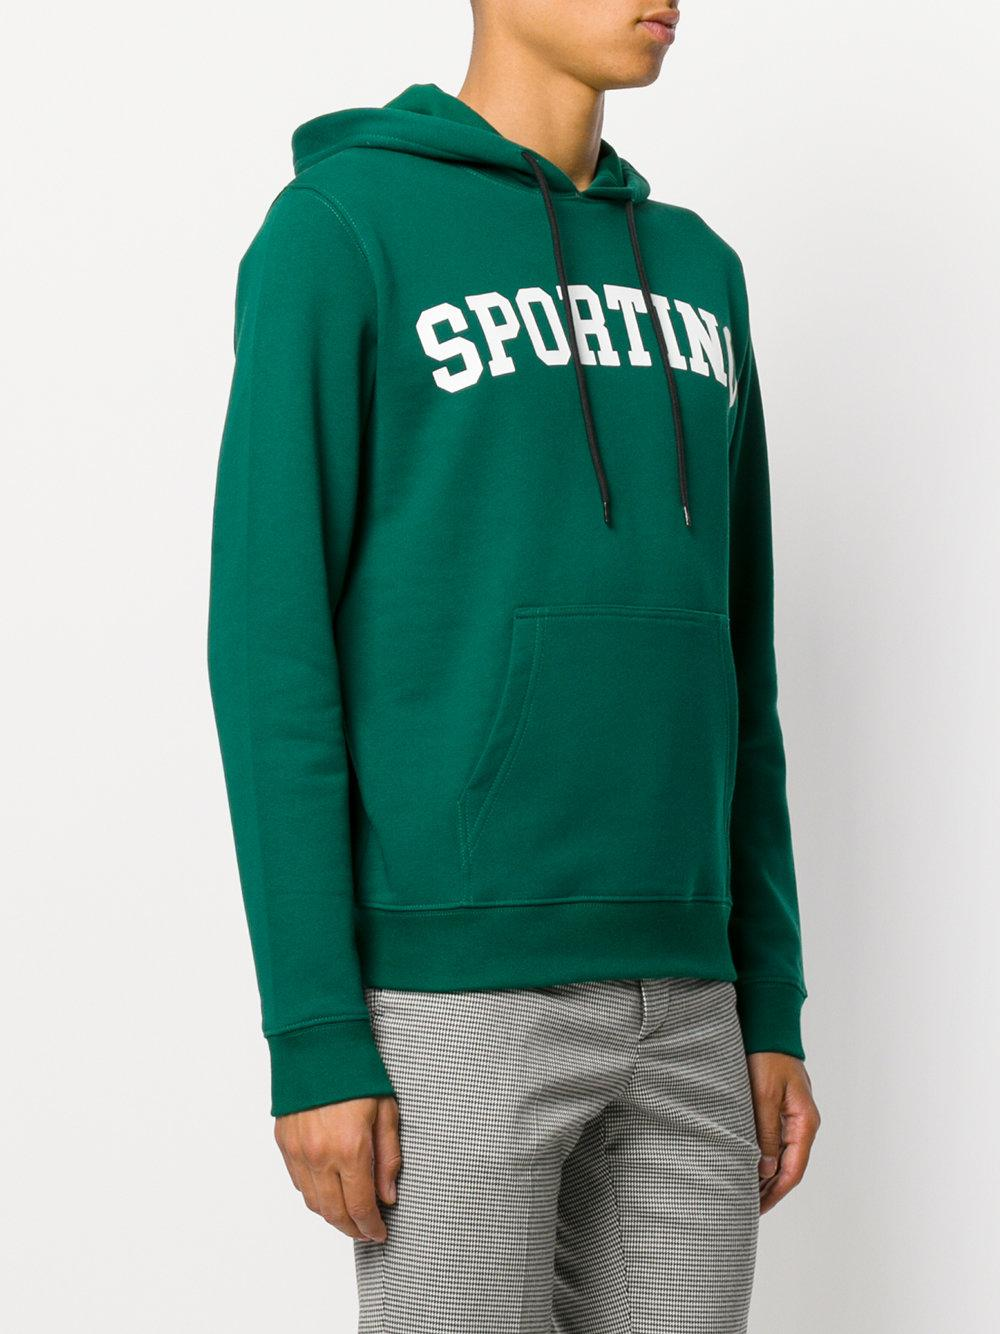 MSGM Cotton Sporting Hoodie in Green for Men